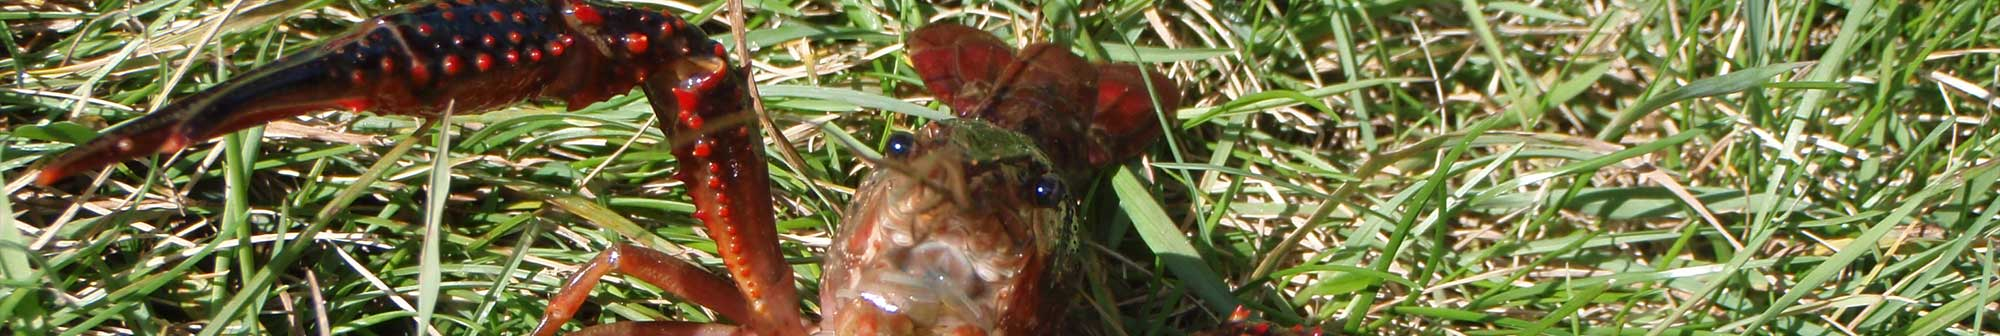 redswampcrayfish